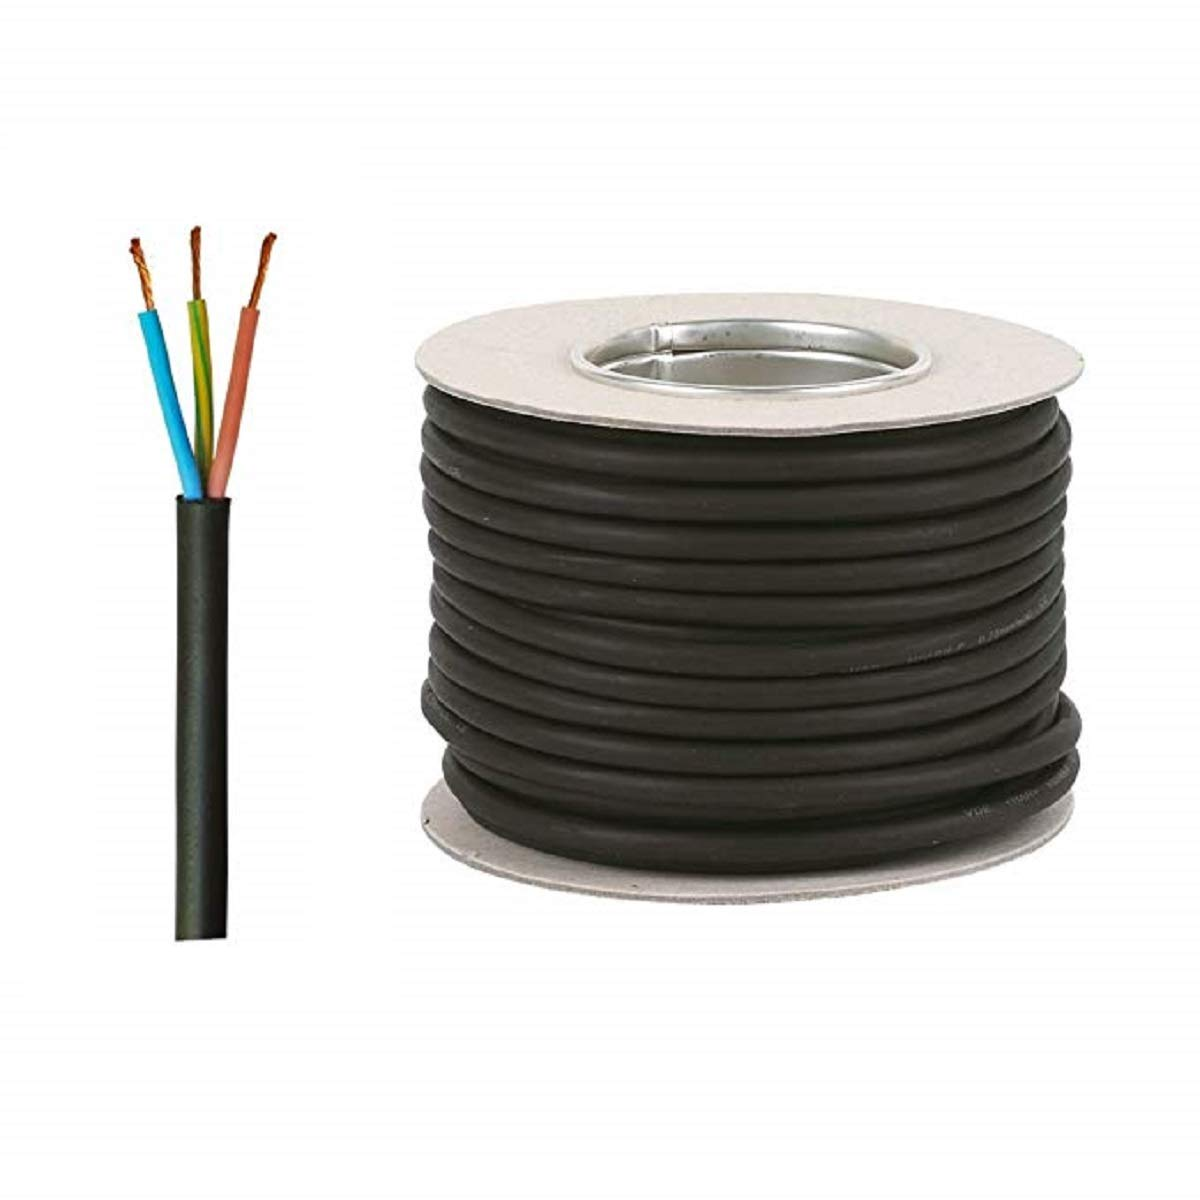 Tough Rubber Pond Cable 3 Core 0.75mm 25 Meters With Waterproof Cable Connector